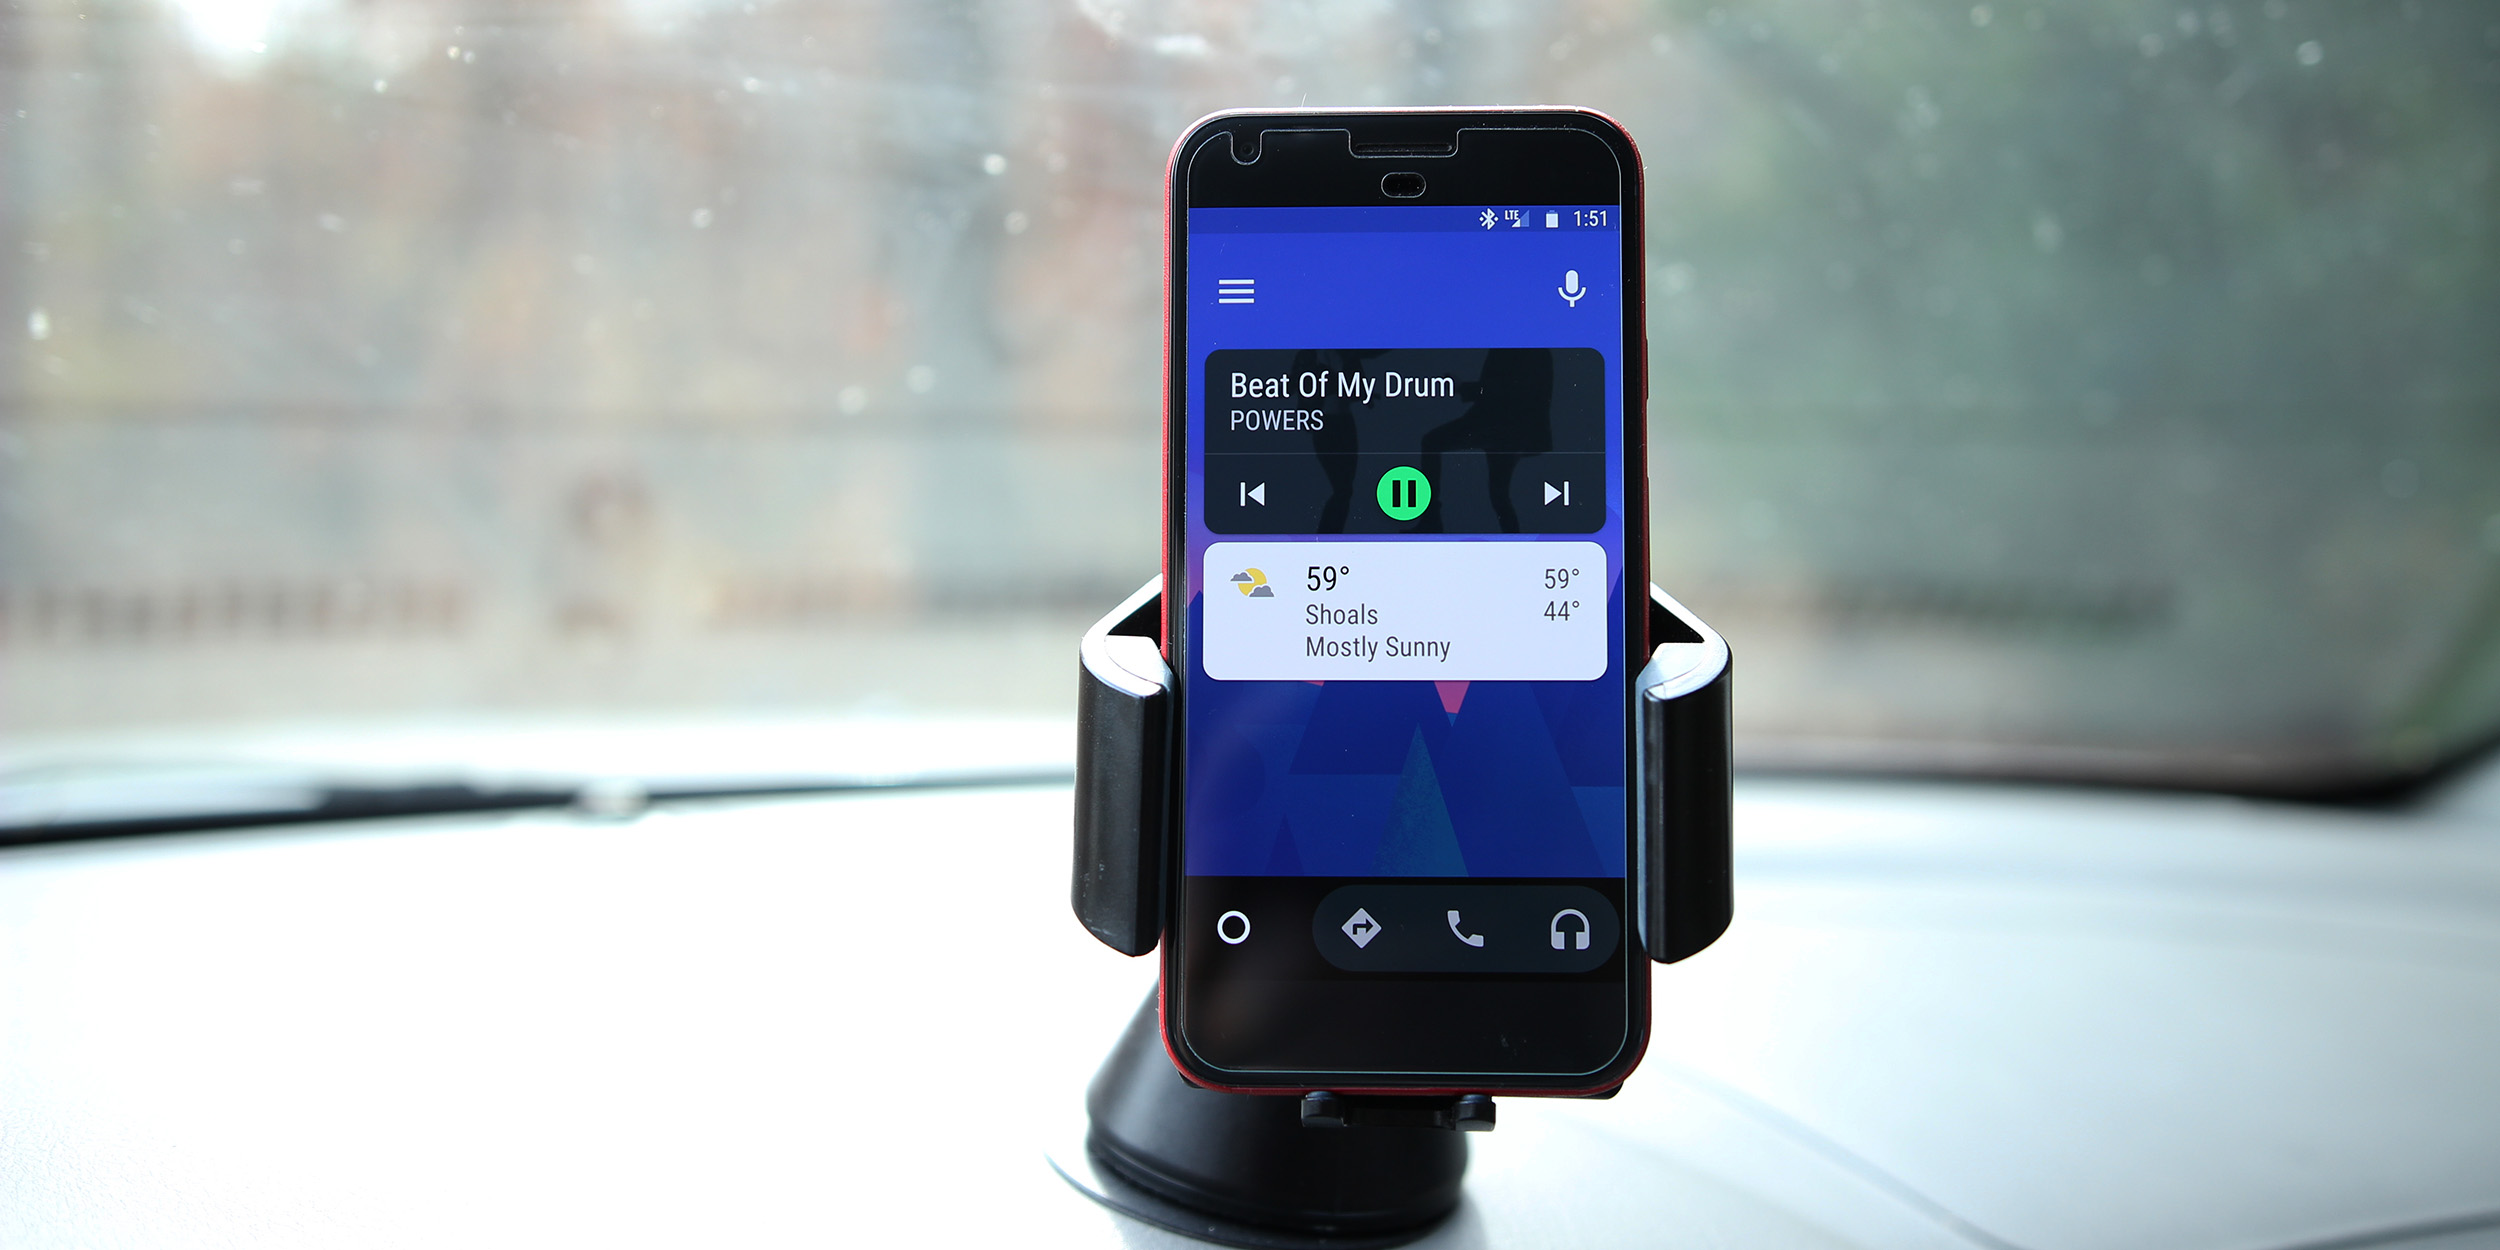 minimize app button being tested in android auto allows for quick app switching